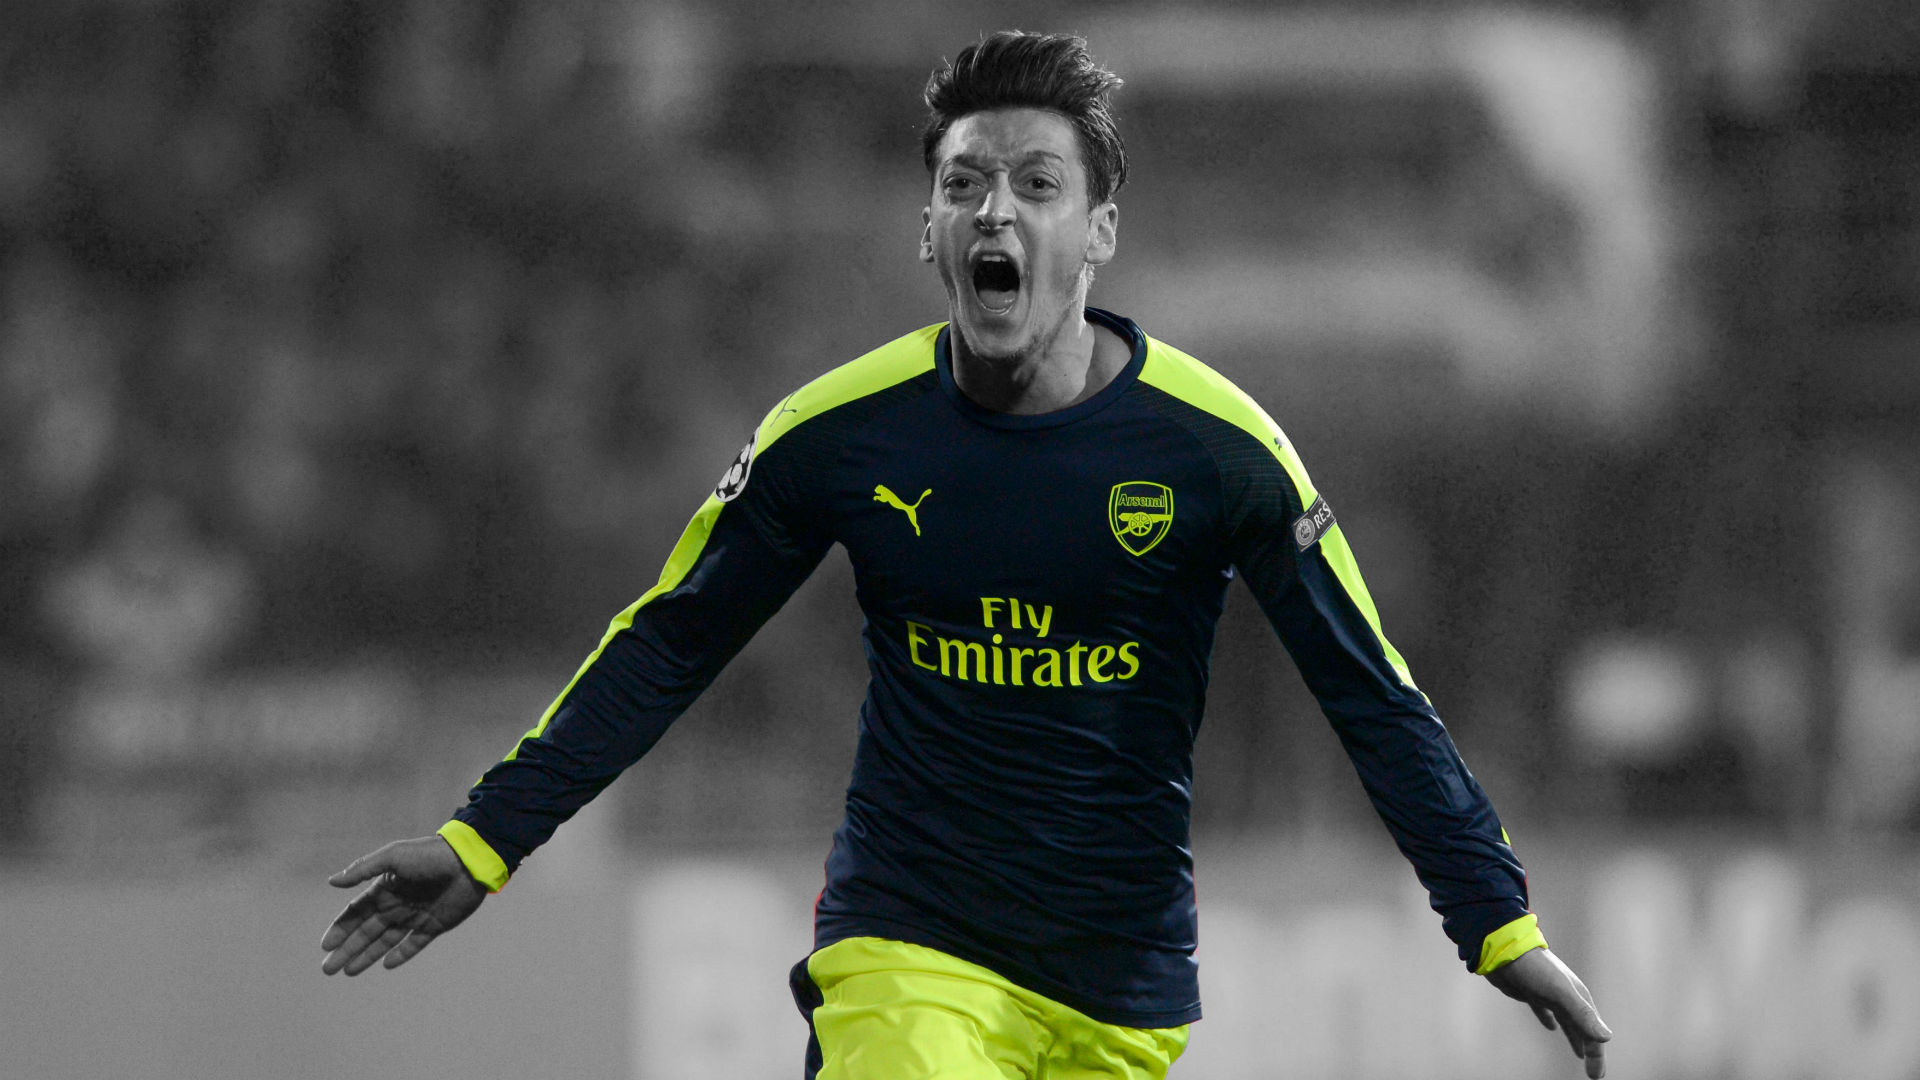 Mesut zil Closes In On 200000 New Deal 1920x1080